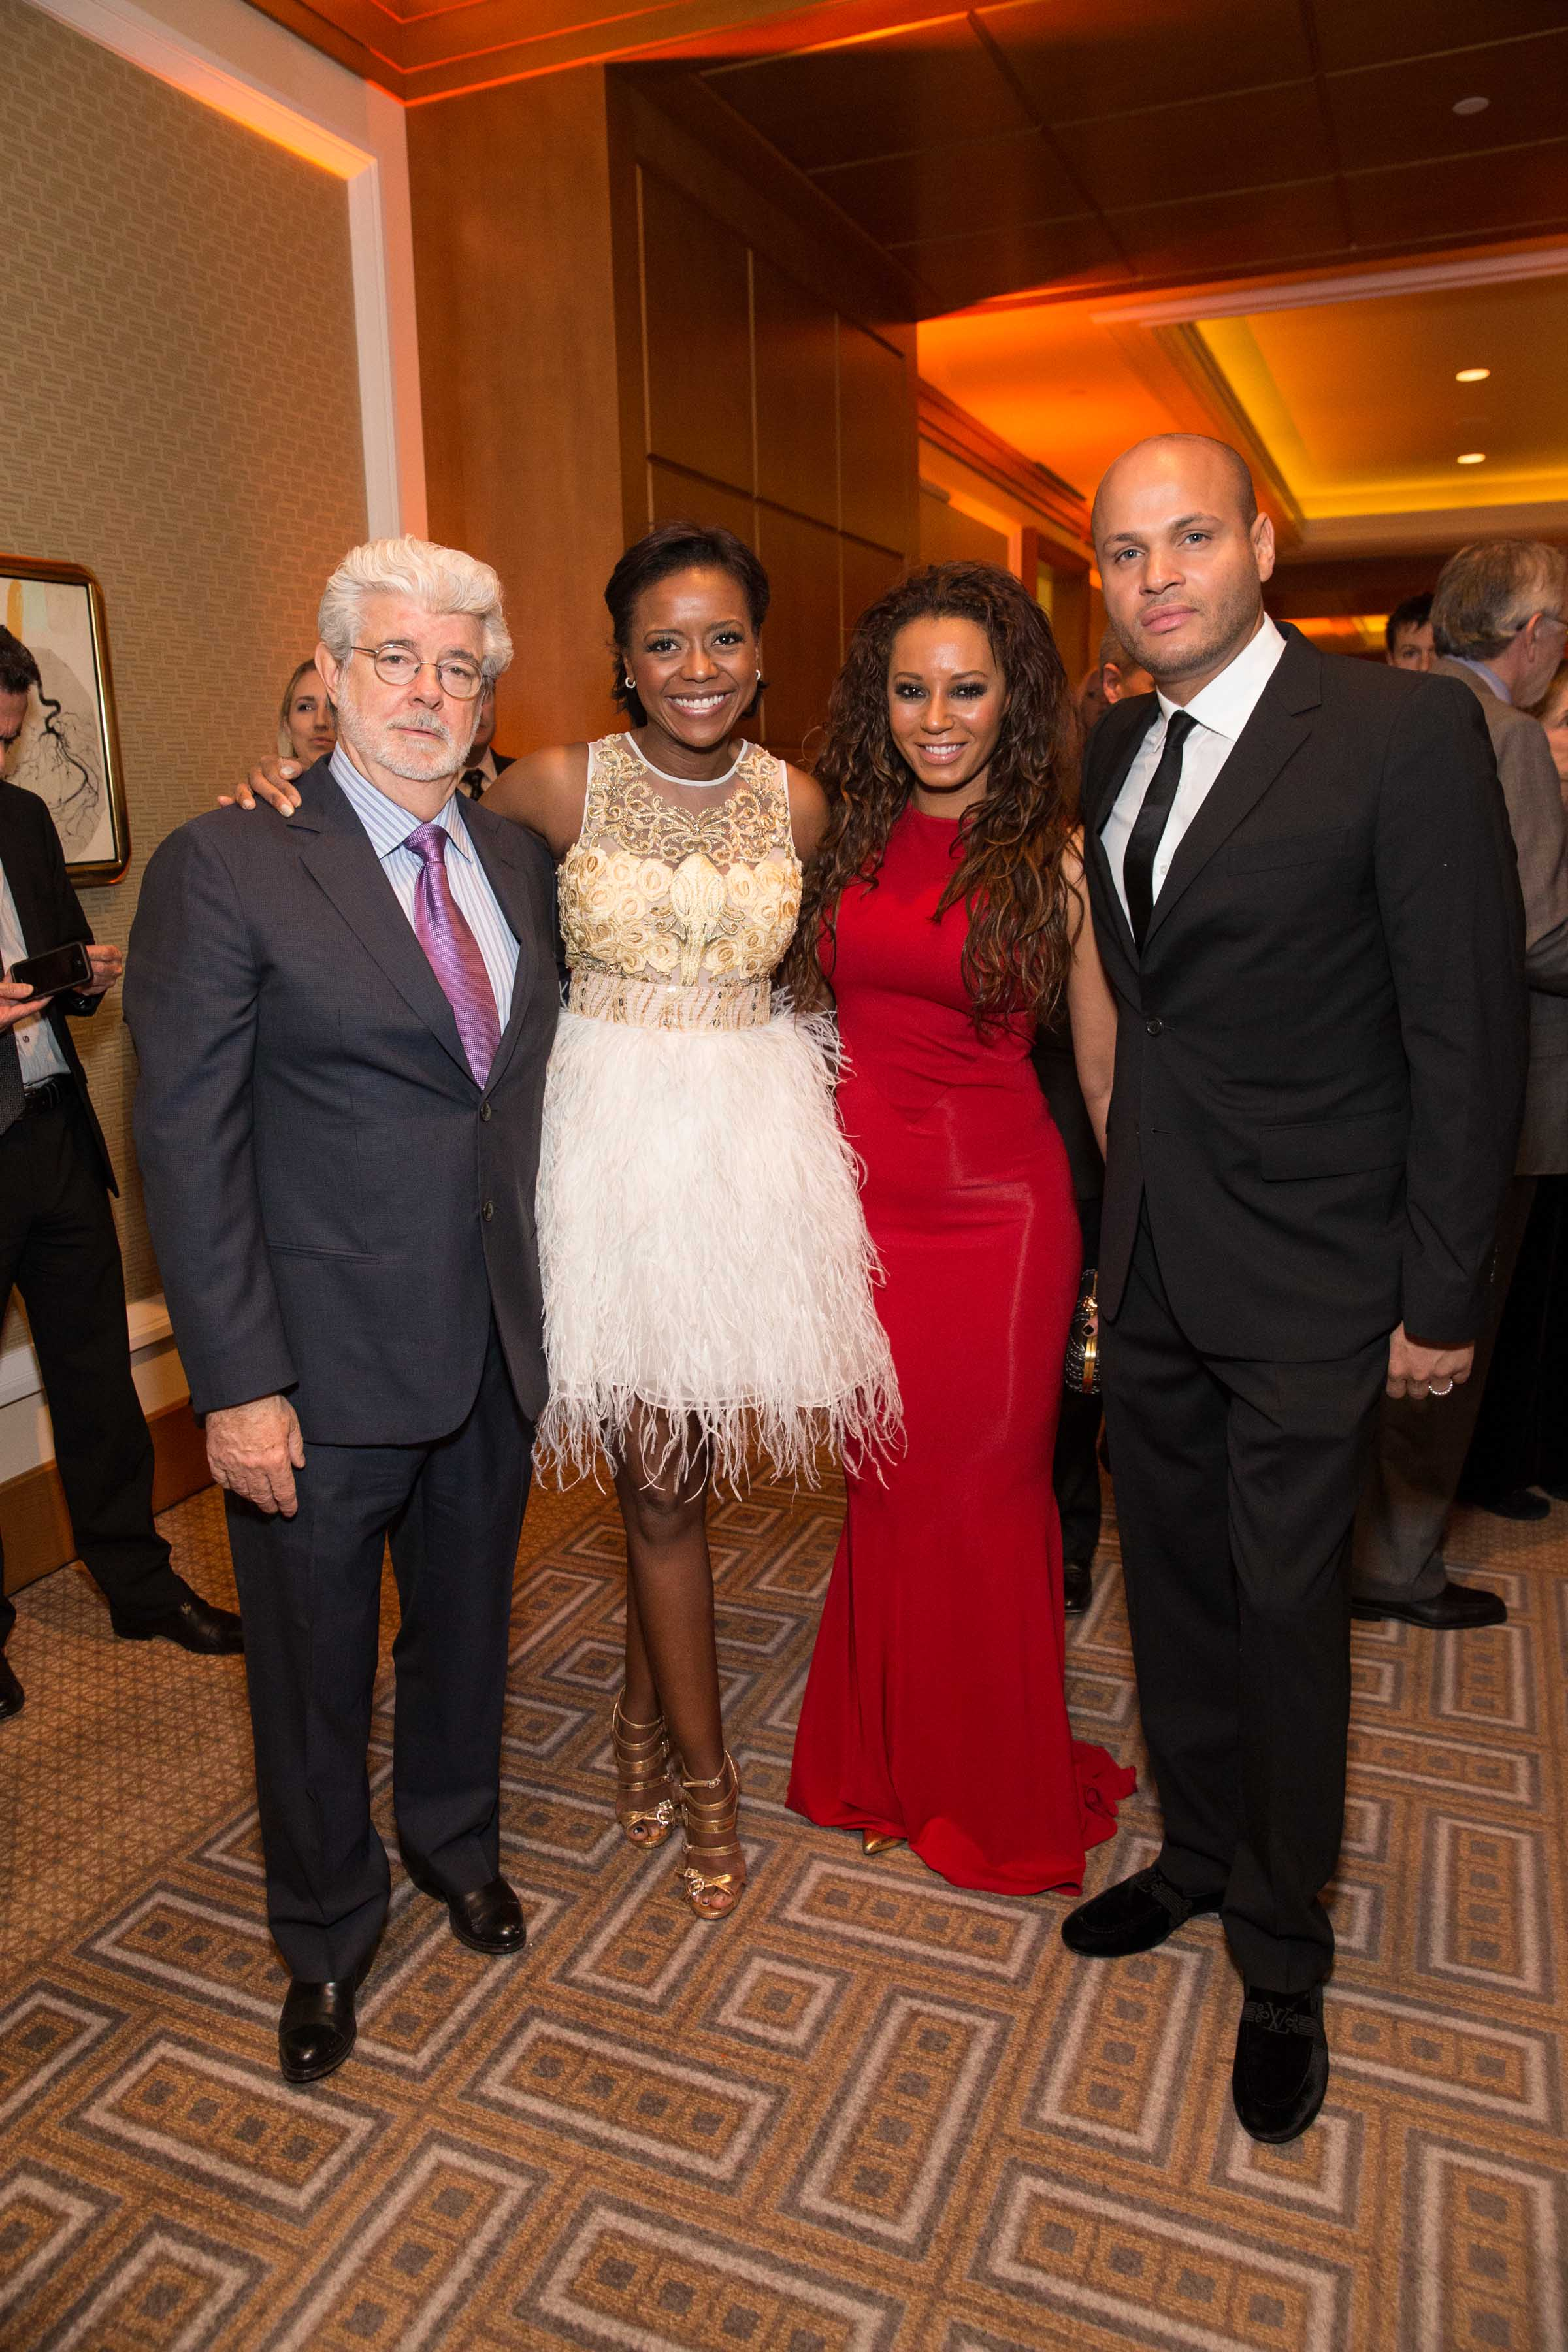 George Lucas, Mellody Hobson, Mel B and Stephen Belafonte Credit: Drew Altizer Photography